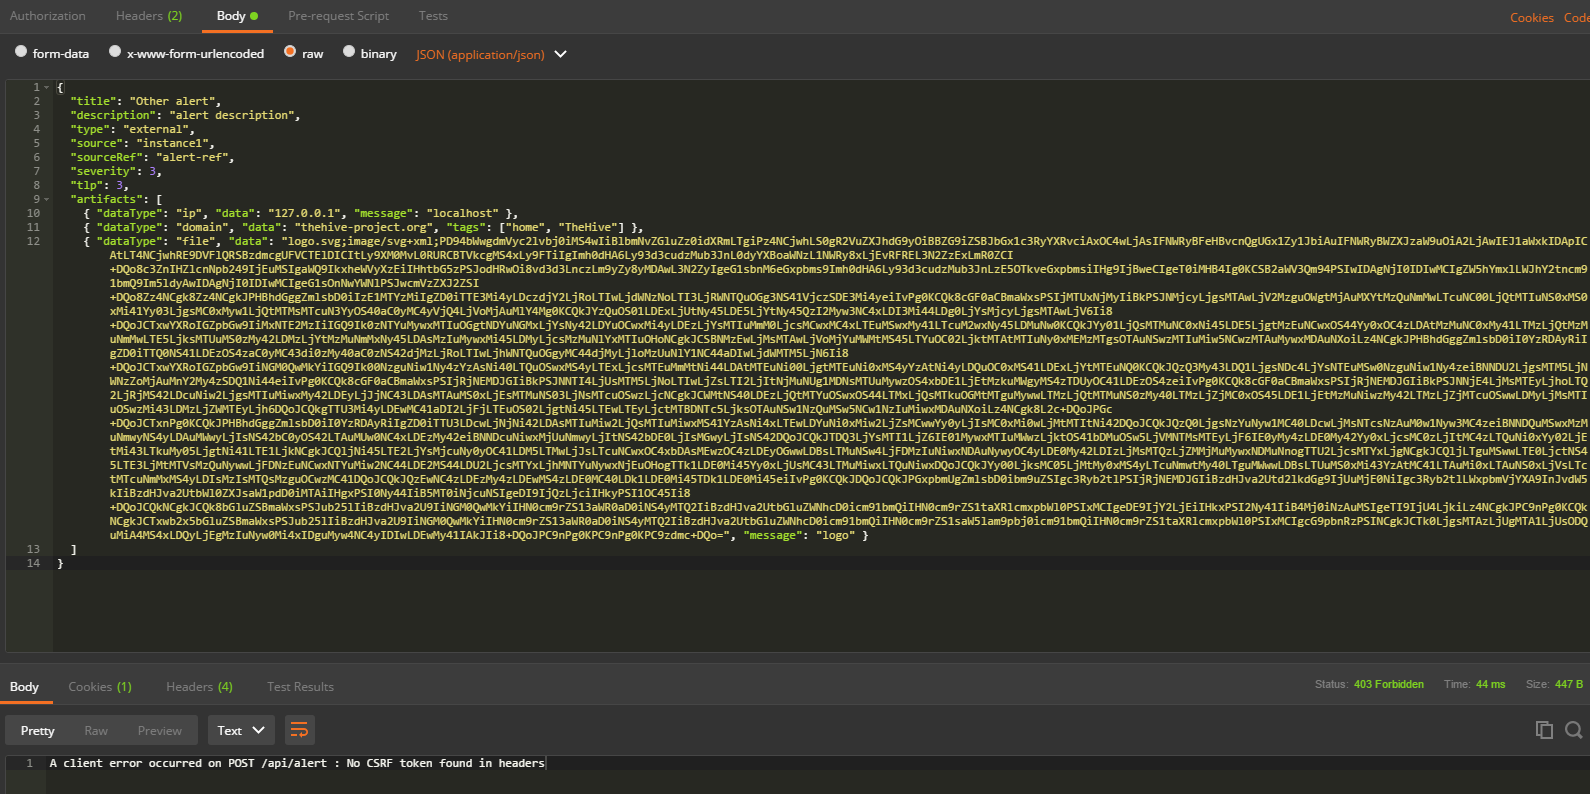 Using Postman to test the API, getting